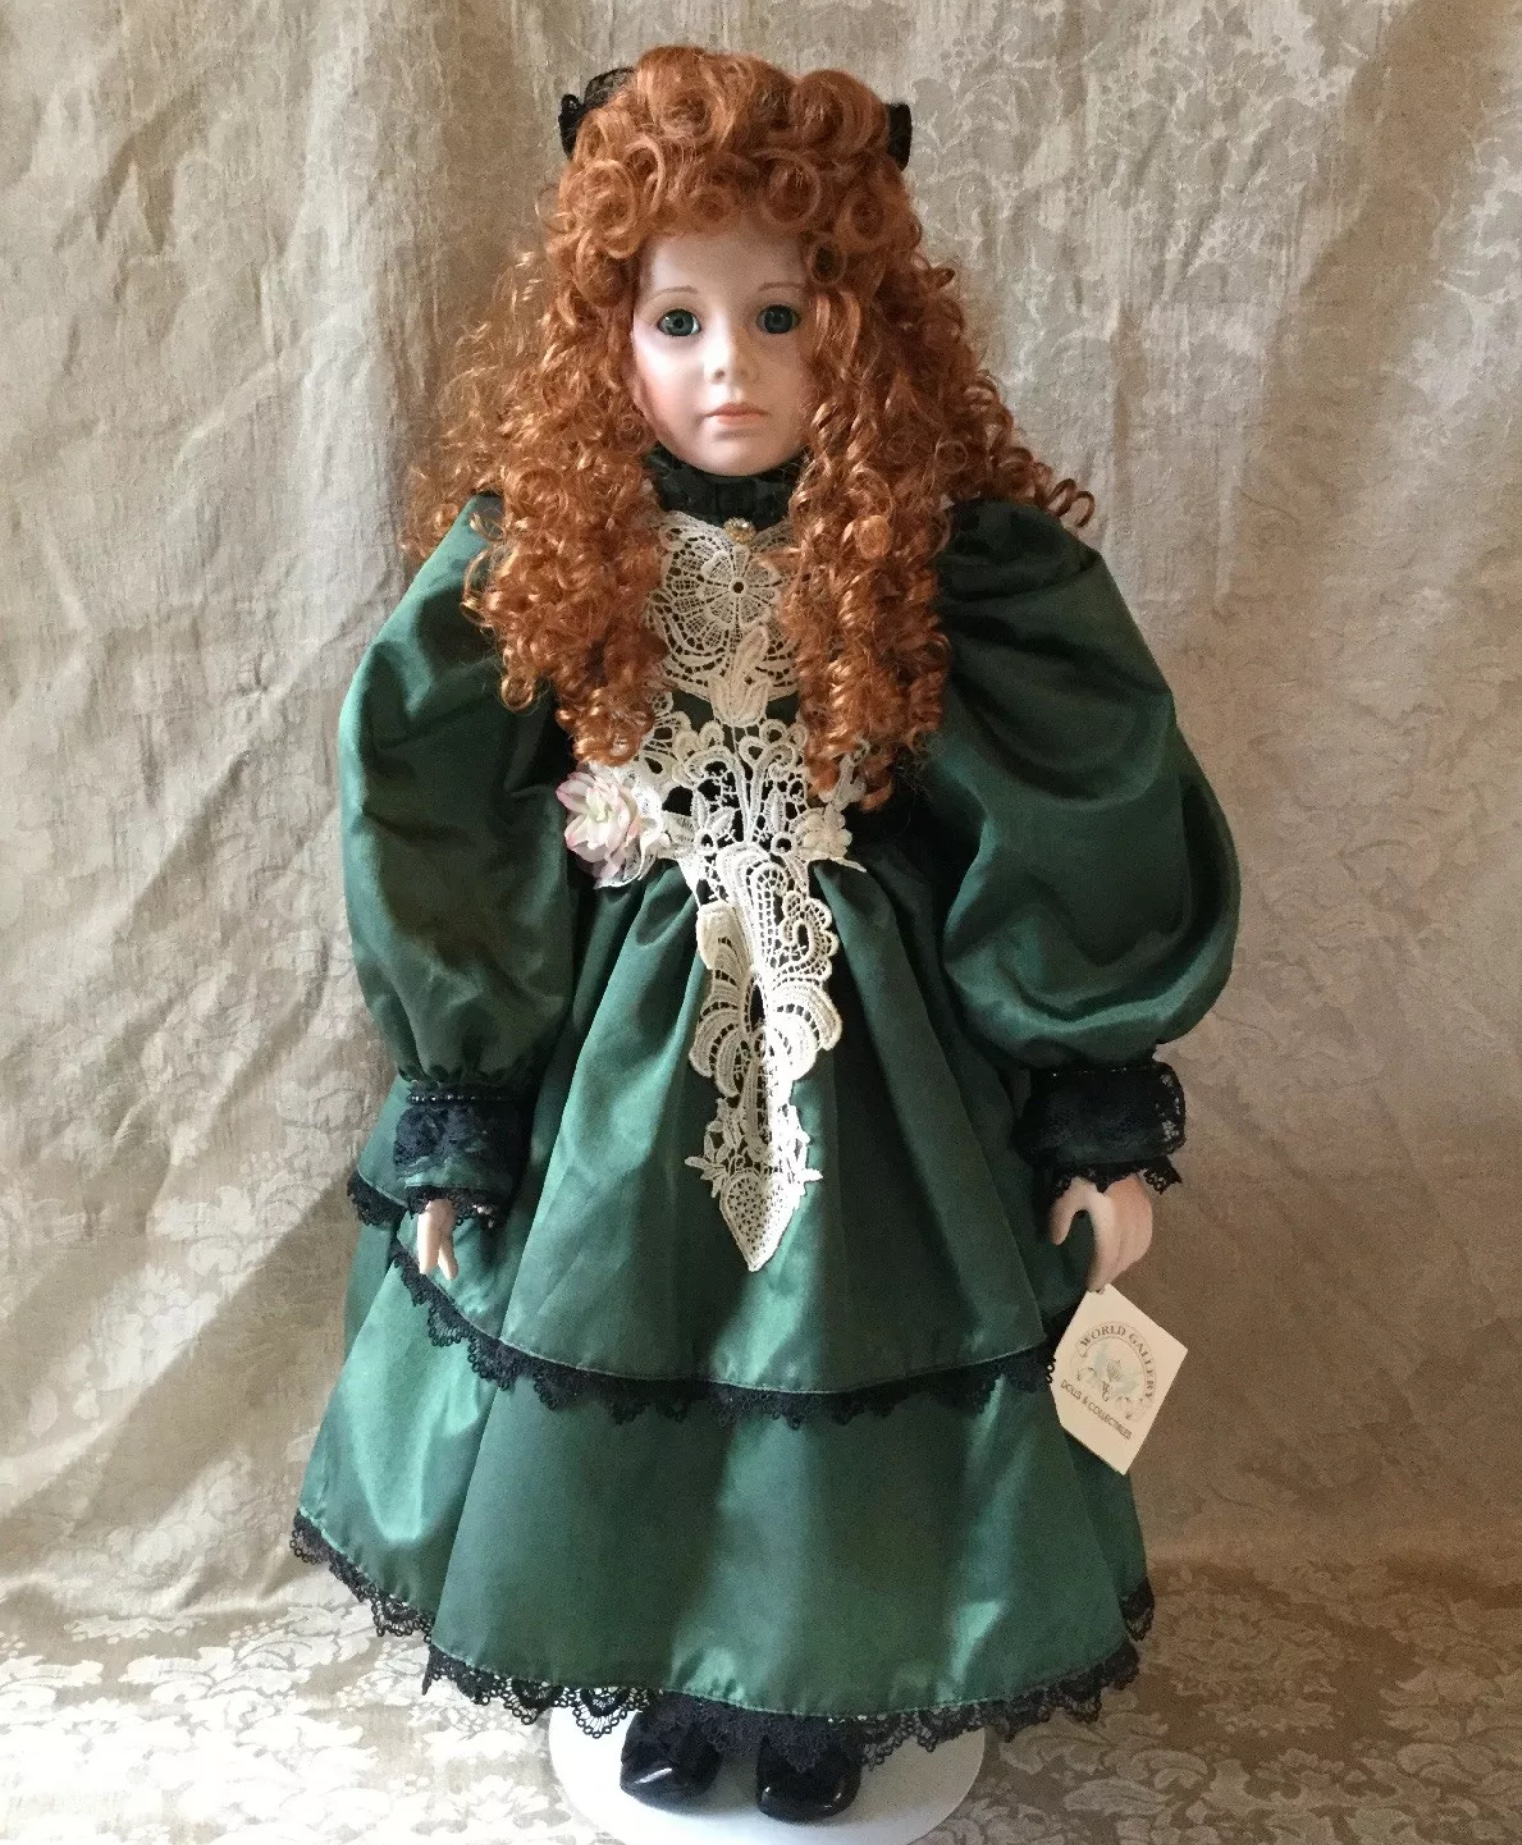 thelma-resch-limited-edition-porcelain-doll-courtney